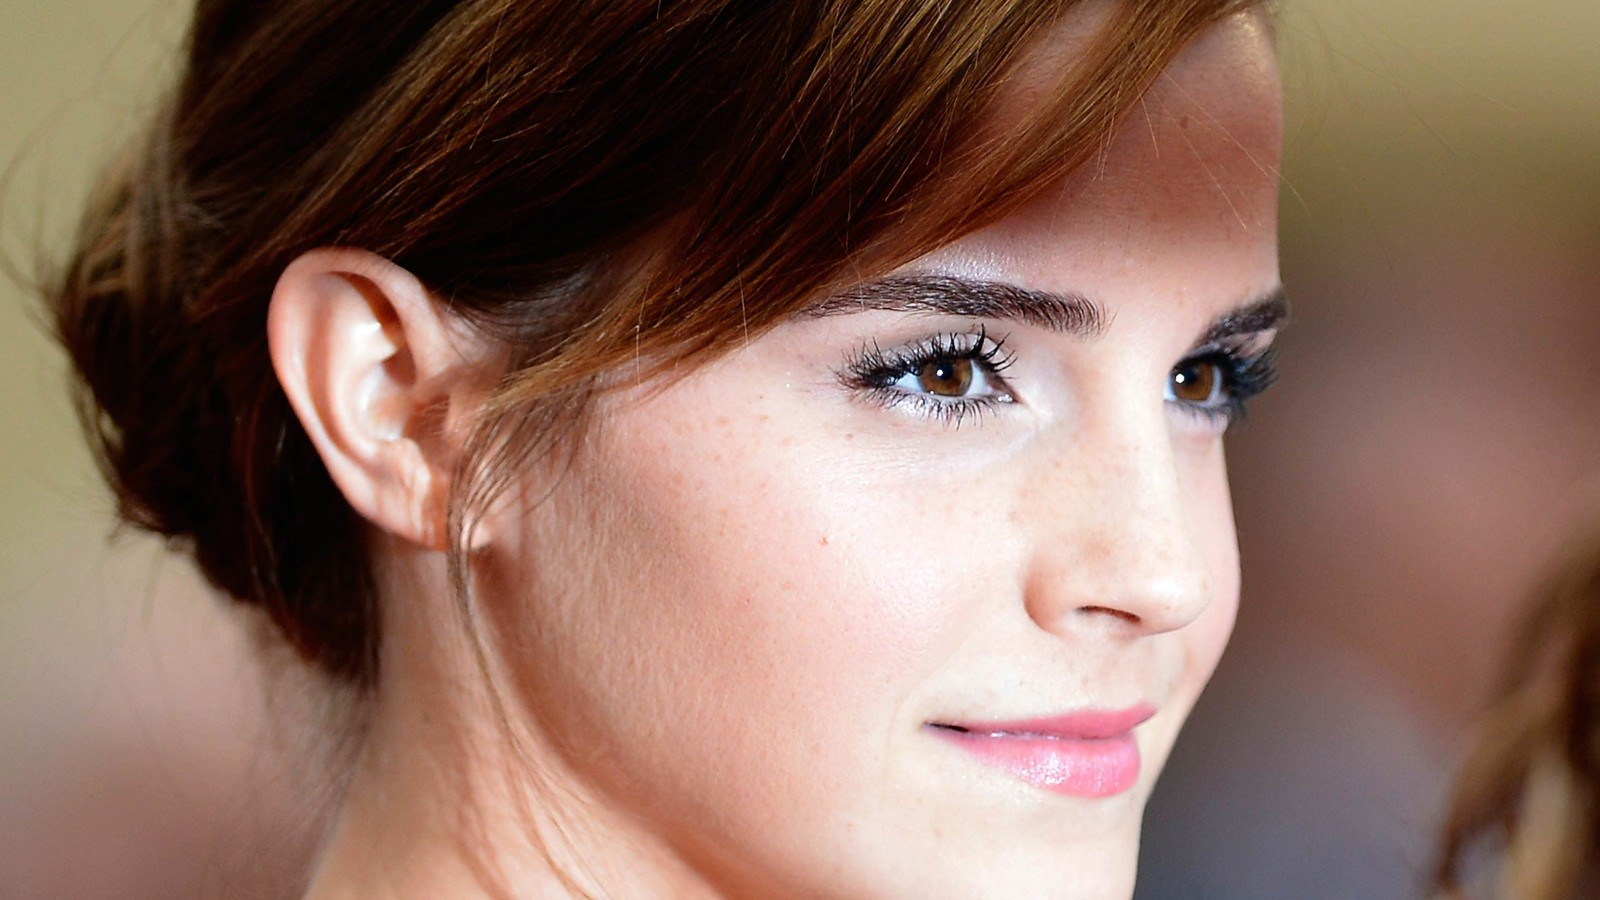 Emma Watson Wallpaper for Desktop 1600x900